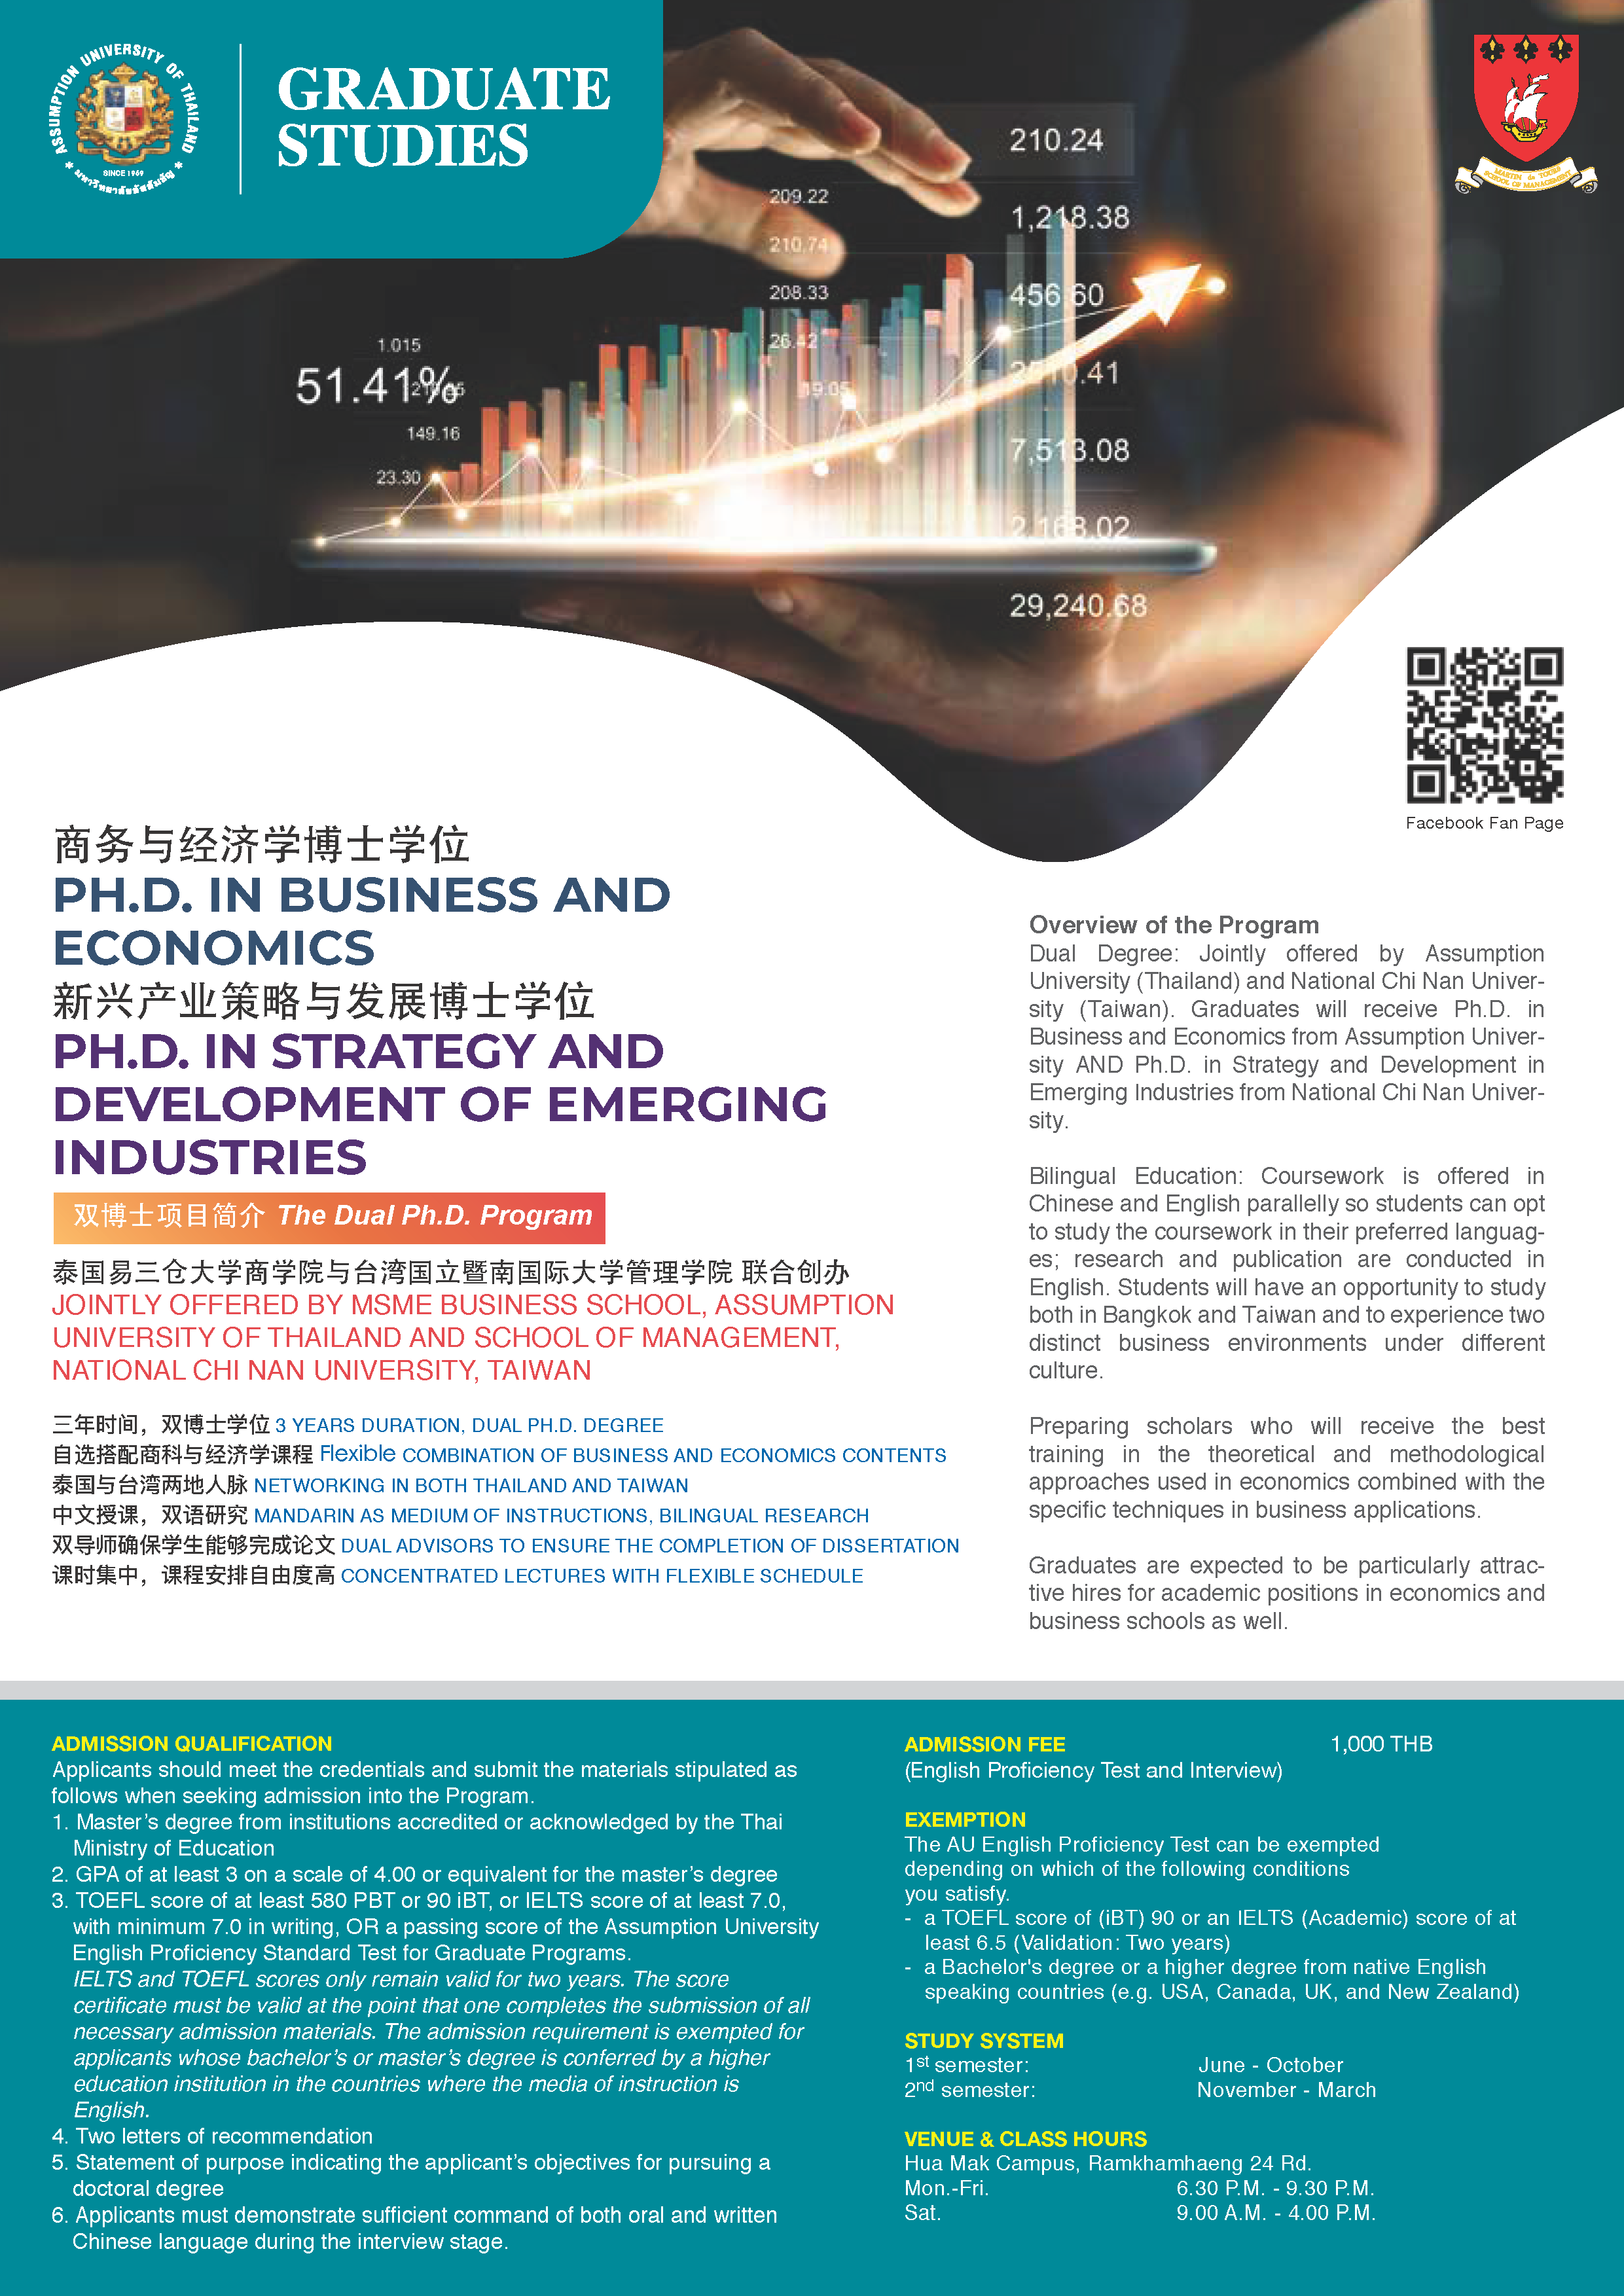 Ph.D. (Business and Economics)  and Ph.D. (Strategy and Development of Emerging Industrial) Dual Degree